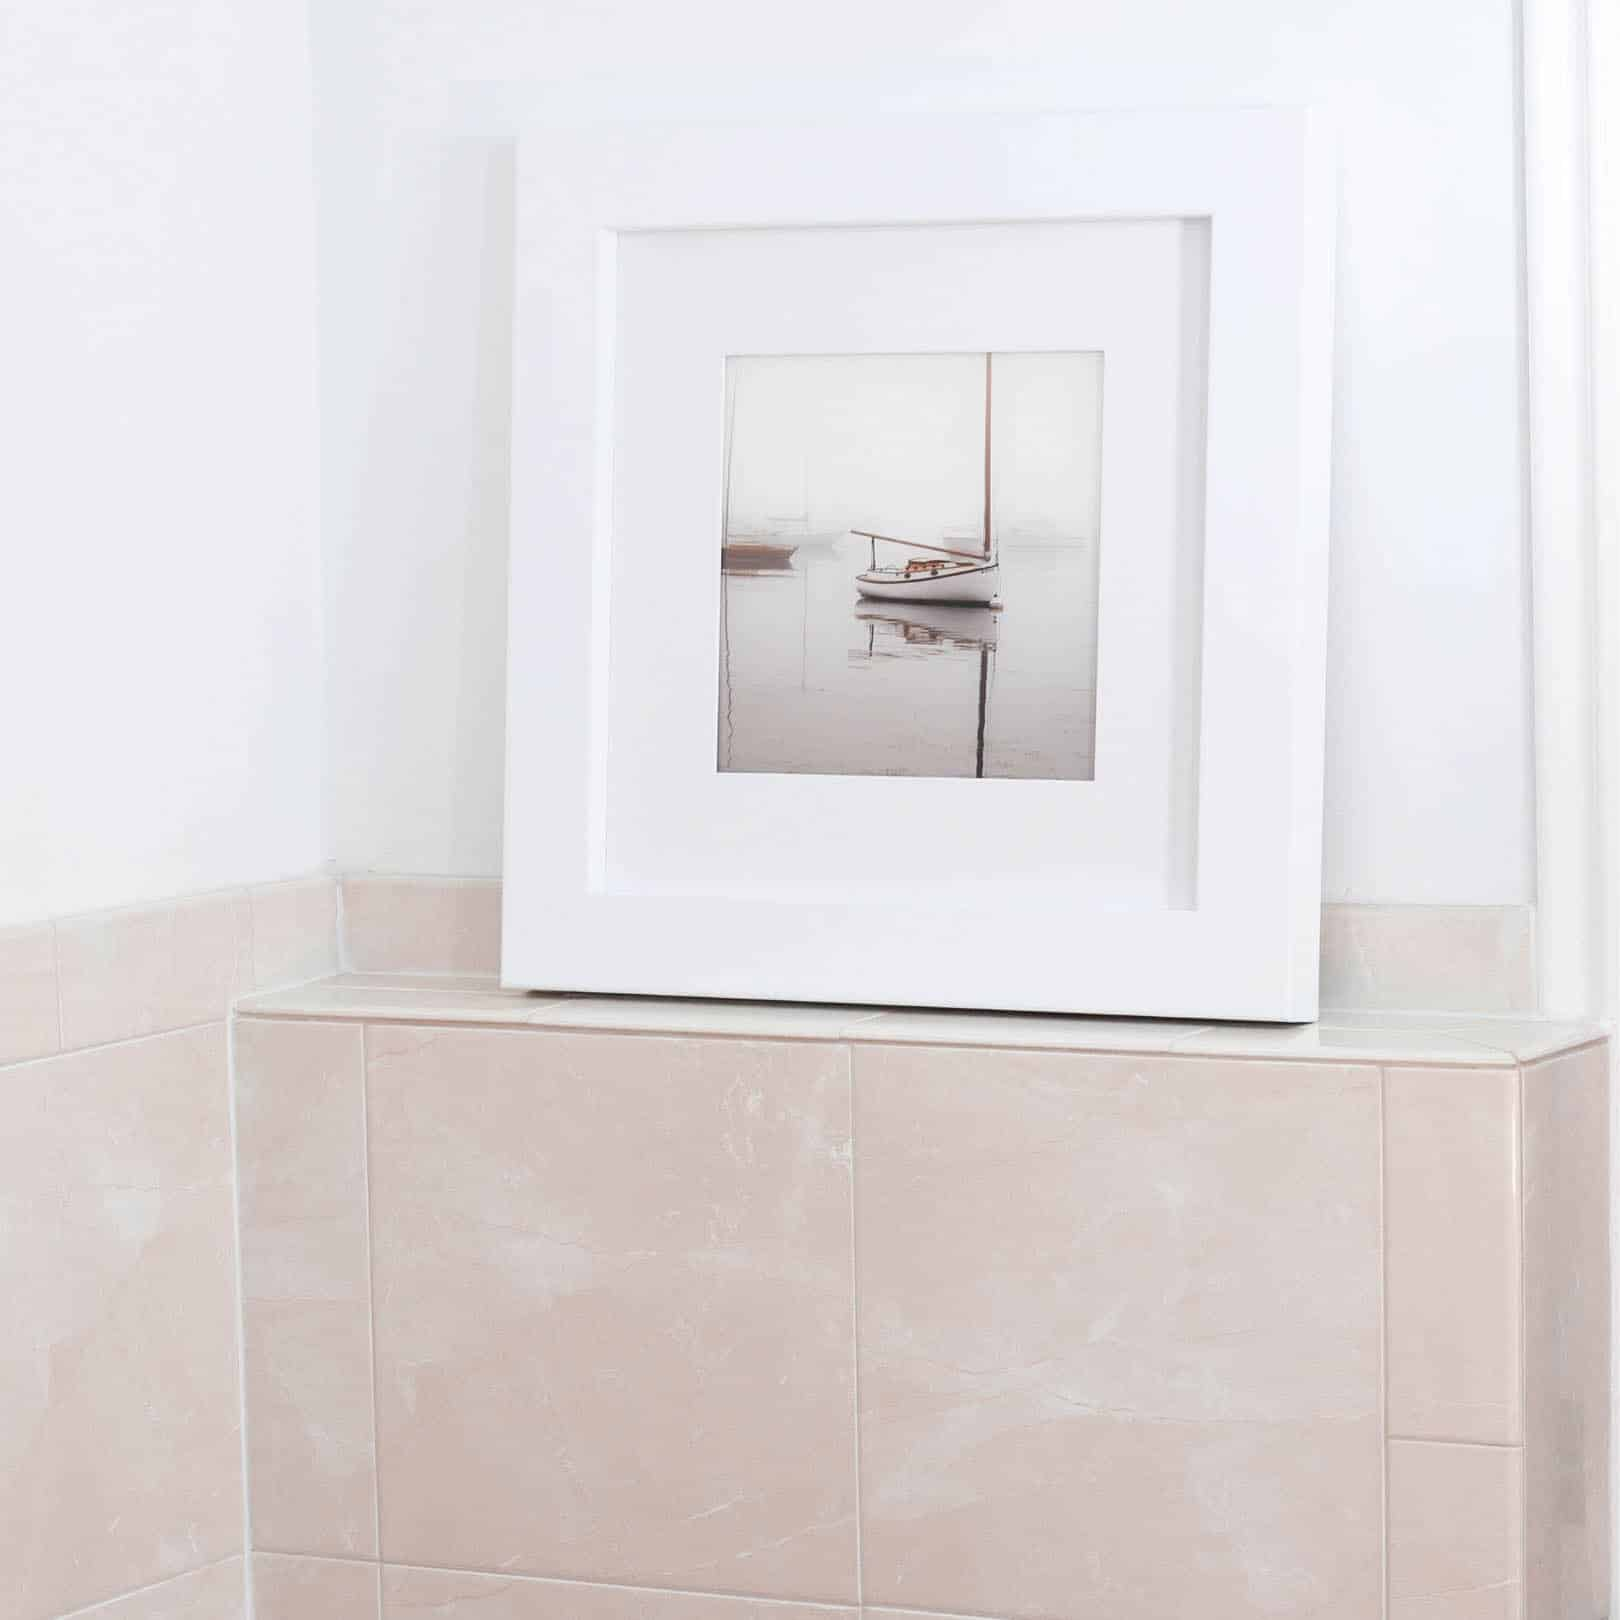 How To Affordably Make Your Bathroom Feel Like A Luxurious Hotels with Lik Squared millennial blogger the confused millennial